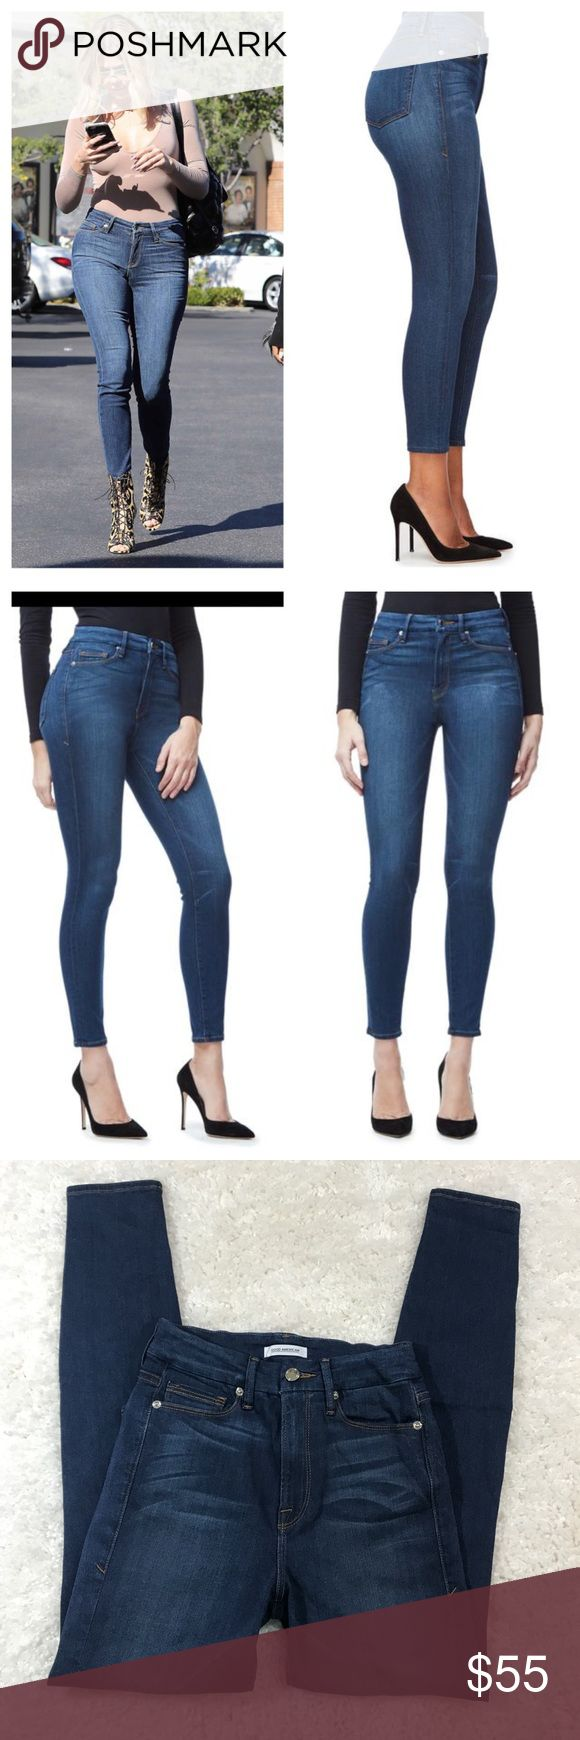 """Khloe Kardashian Good American high waisted jeans In EUC jeans by Khloe Kardashian Good American brand. The jeans are high waisted and does have stretch to them. Measurements waist 13"""" rise 10"""" inseam 27"""" length 37.5"""" Good American Jeans Skinny"""